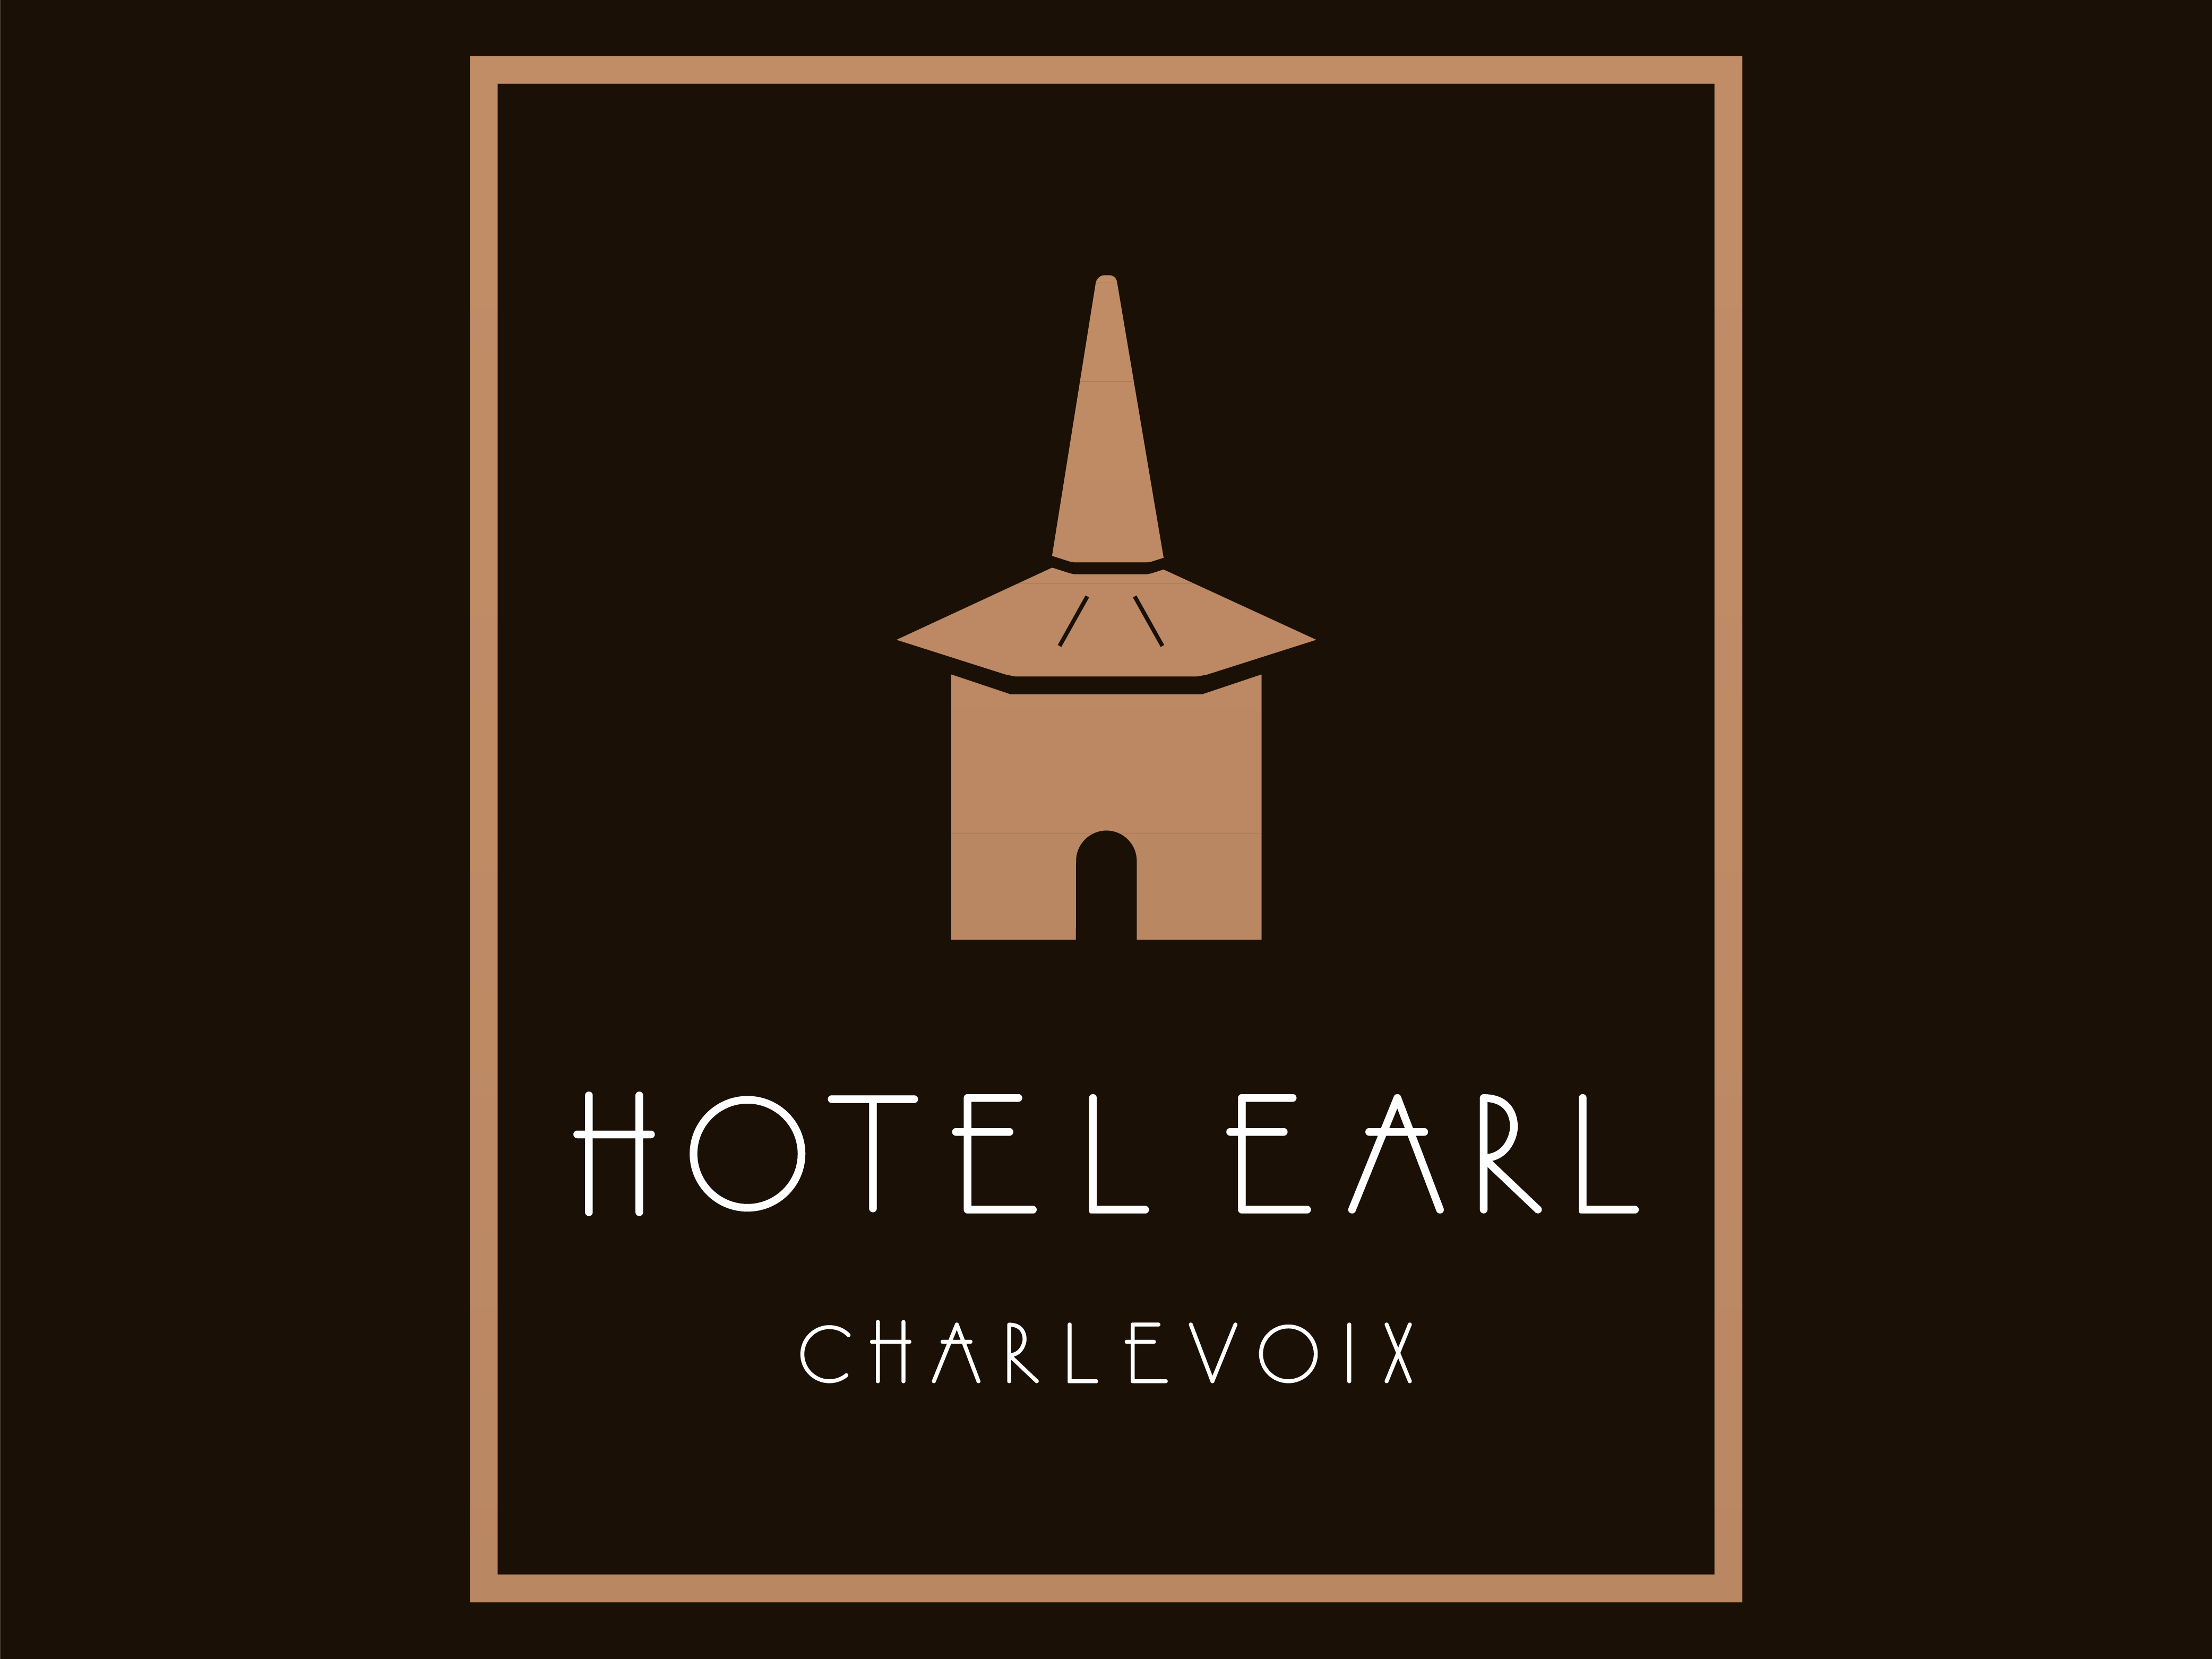 Hotel Earl Gift Certificates